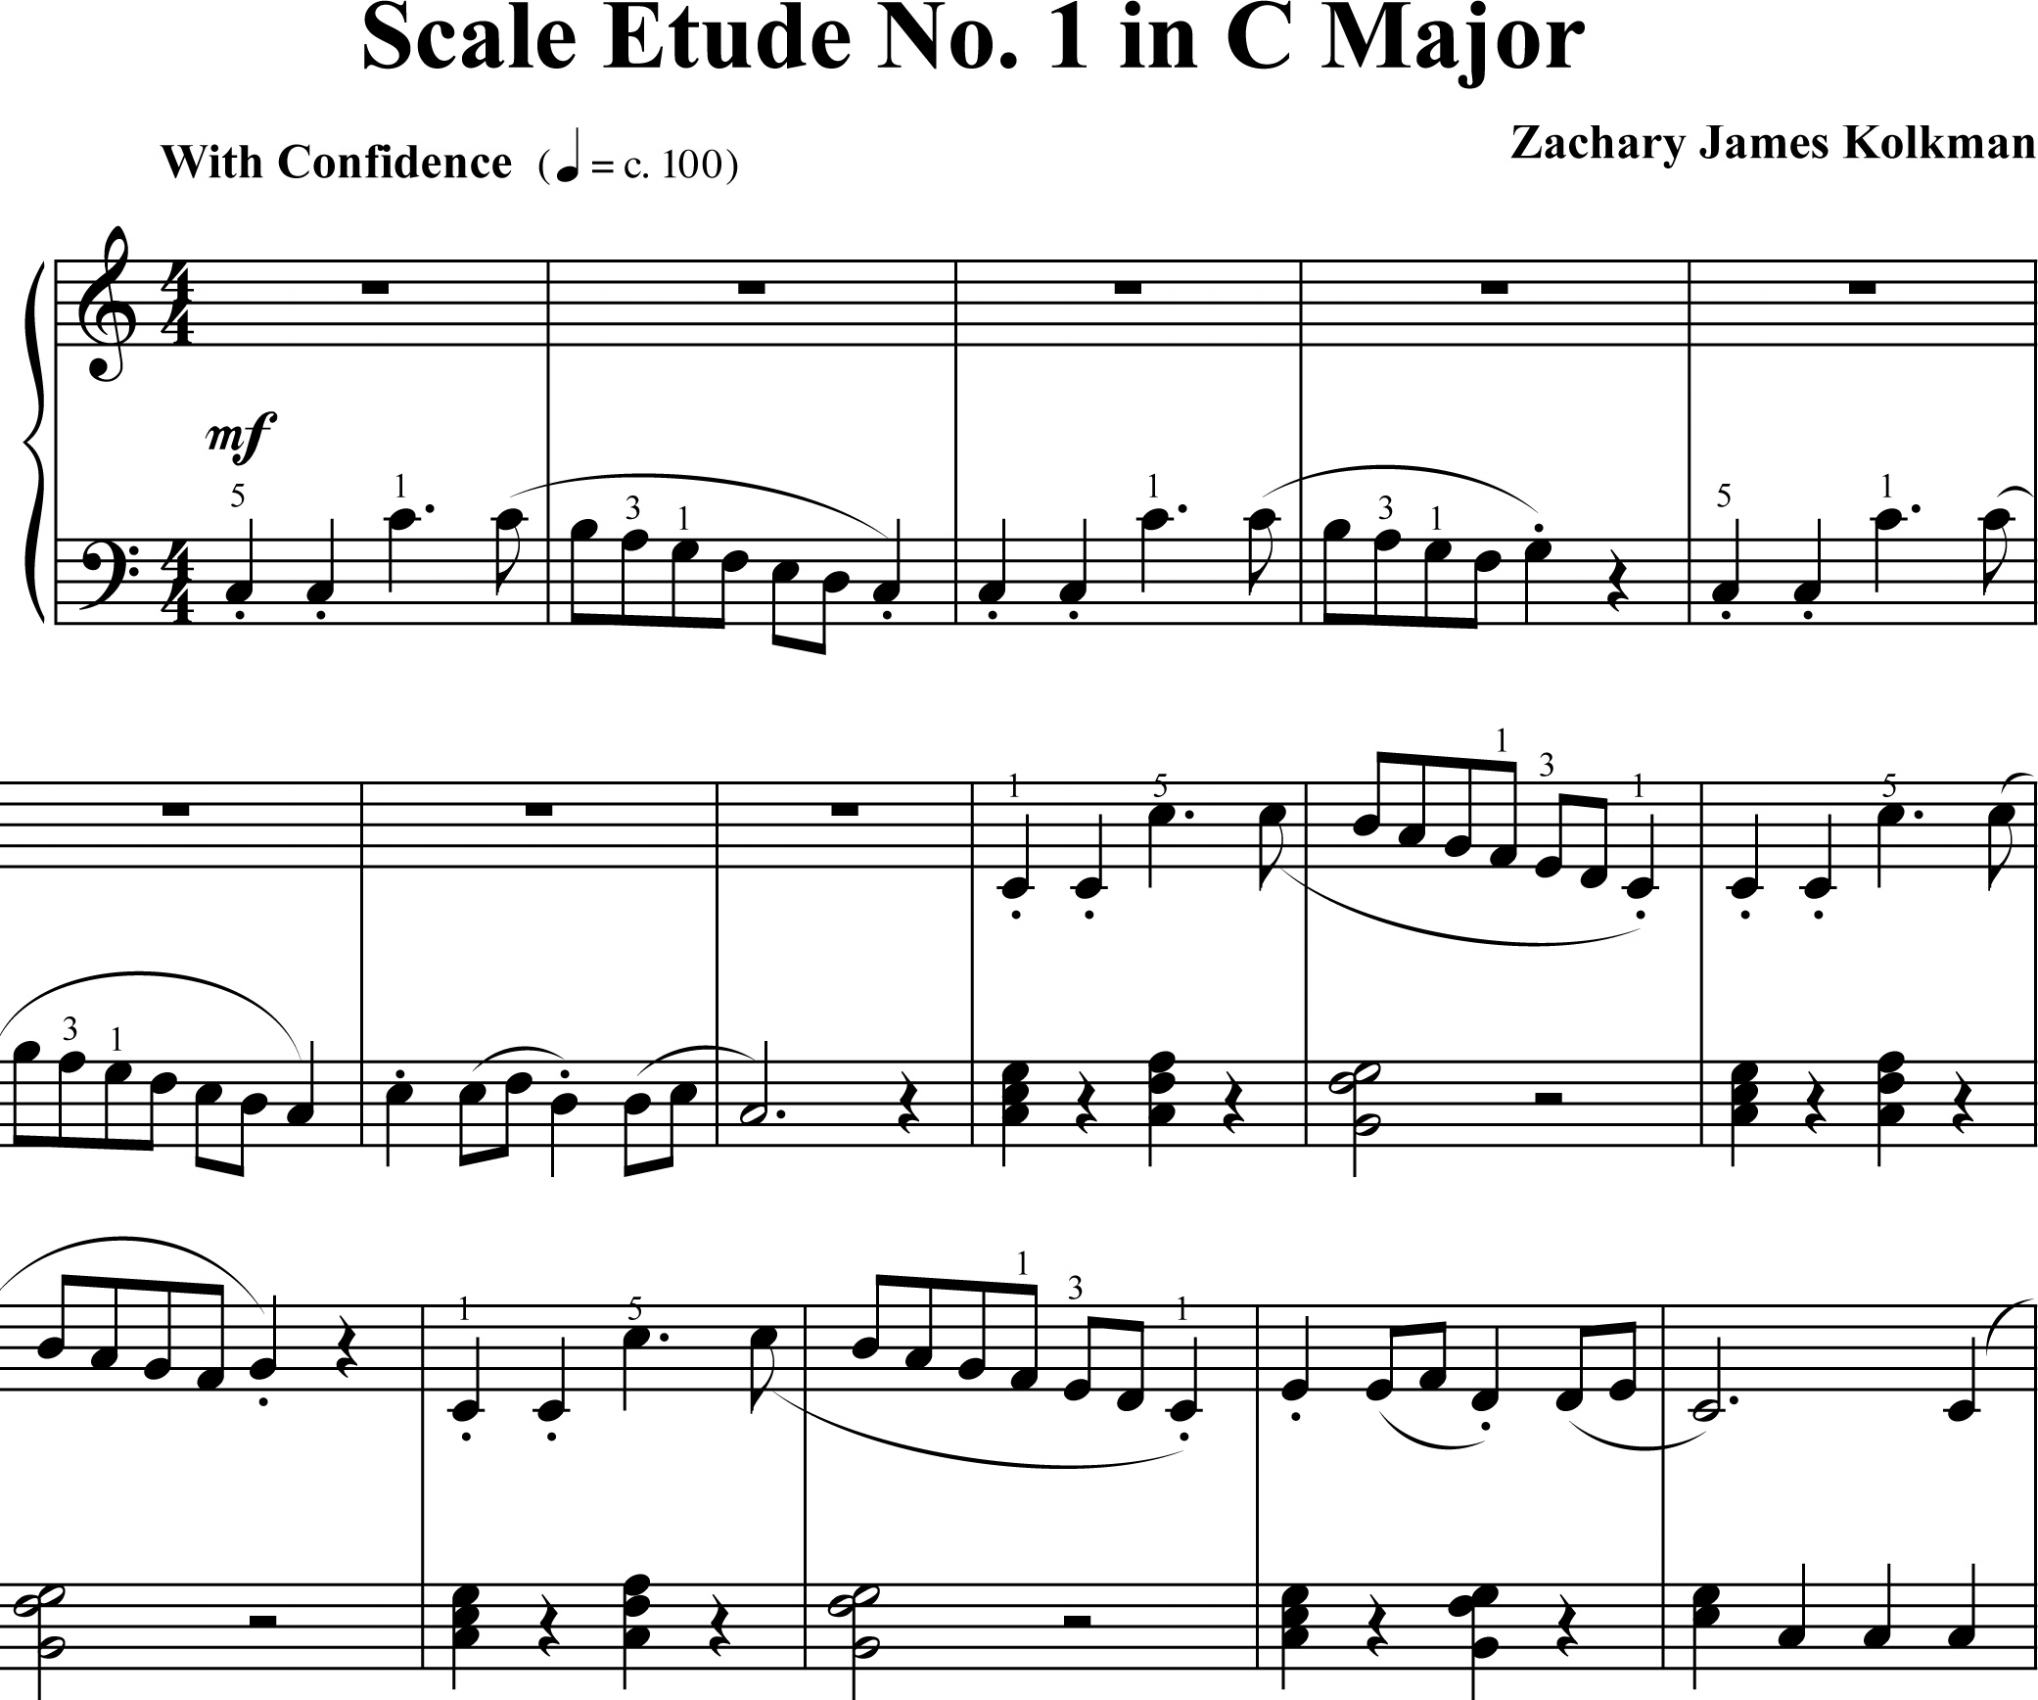 Sheet Music Download:  Scale Etude No. 1 in C Major